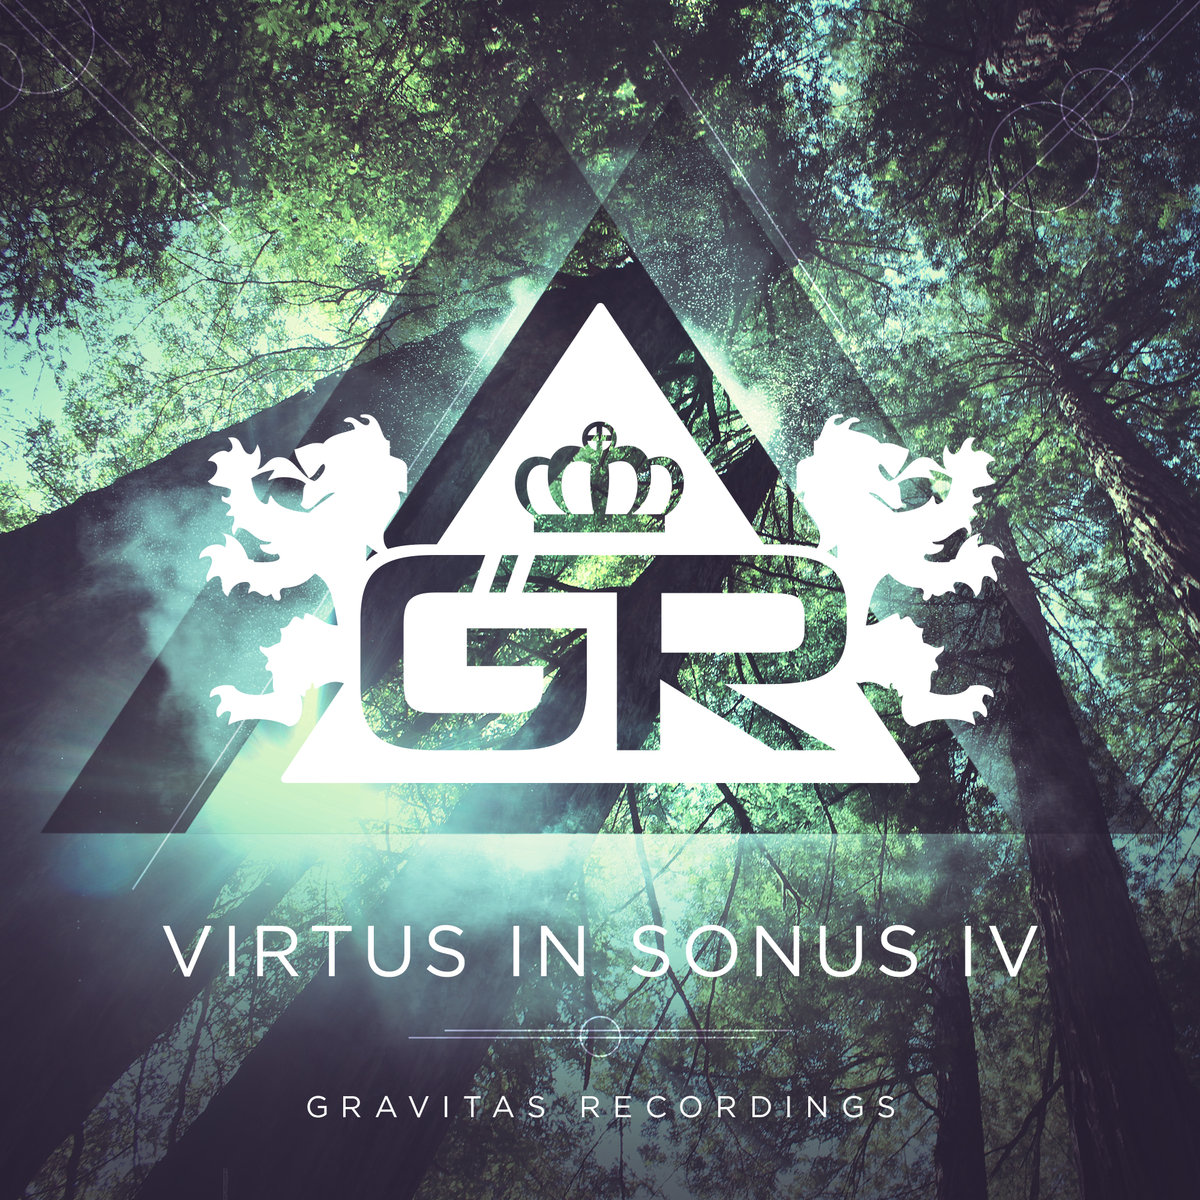 Various Artists - Virtus In Sonus IV @ 'Virtus In Sonus IV' album (Austin)